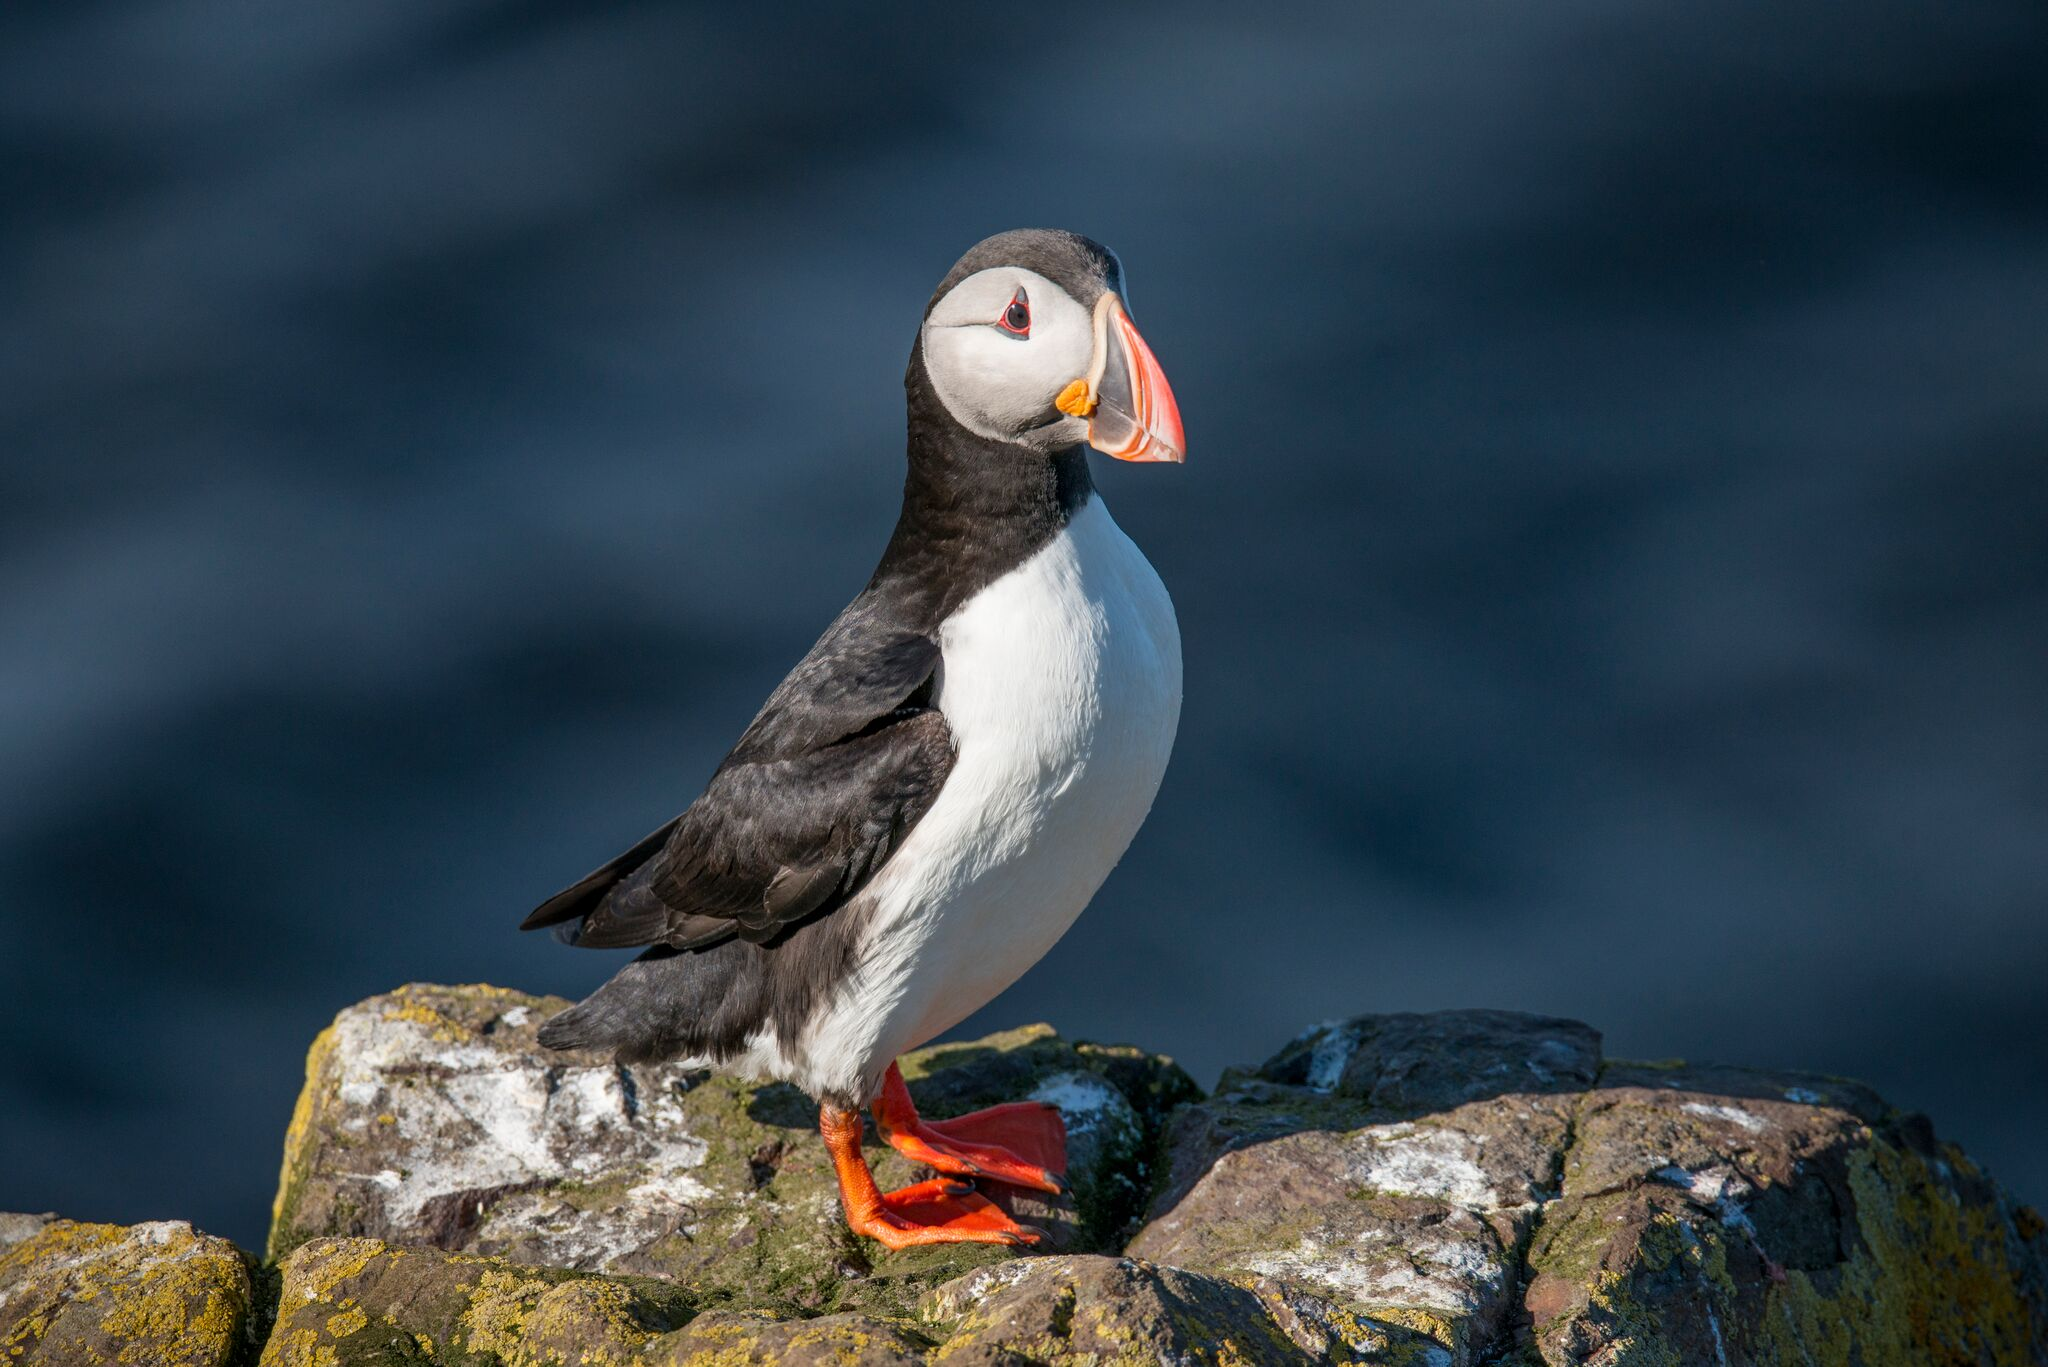 A puffin standing proudly on a rock near the ocean.